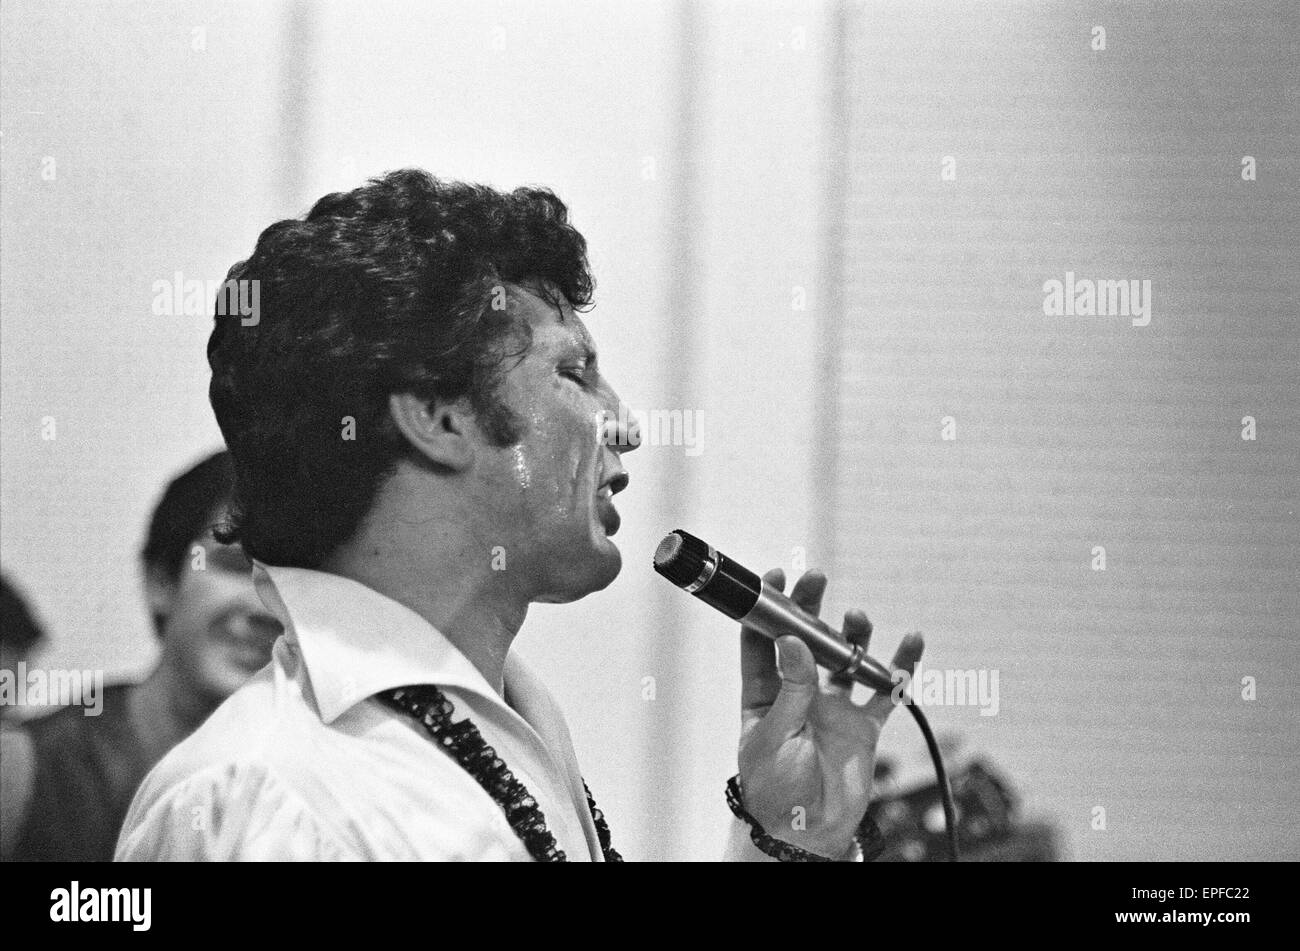 the history of tom jones a Find the perfect tom jones stock photo huge collection, amazing choice, 100+ million high quality, affordable rf and rm images no need to register, buy now.